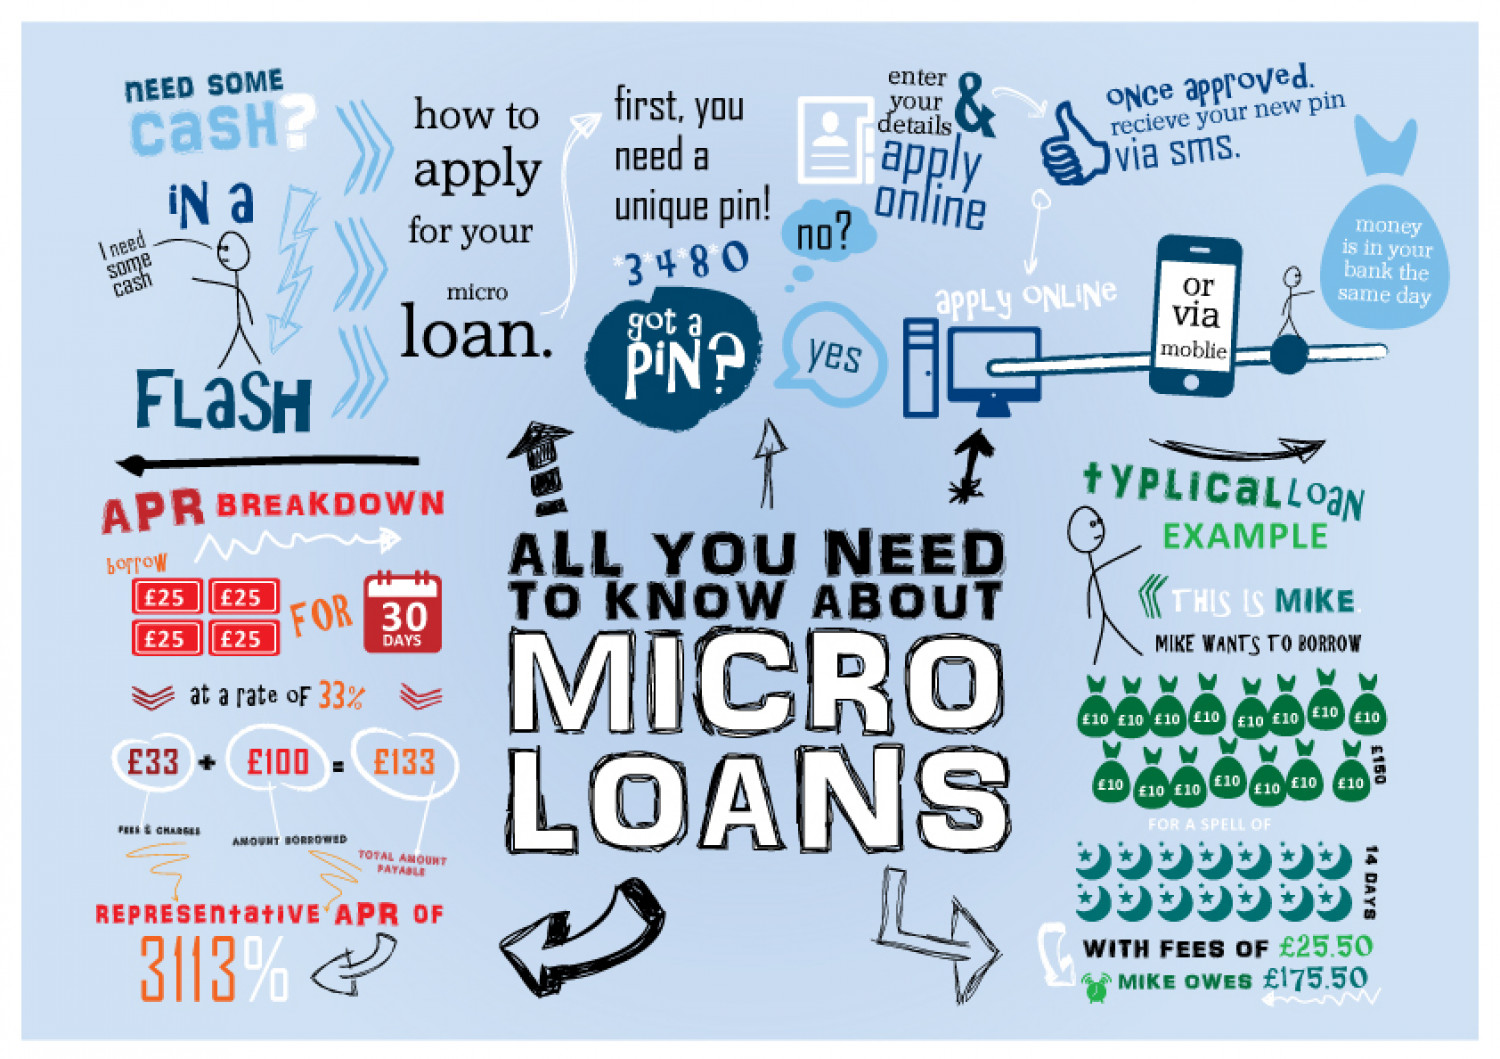 All You Need To Know About Micro Loans Infographic